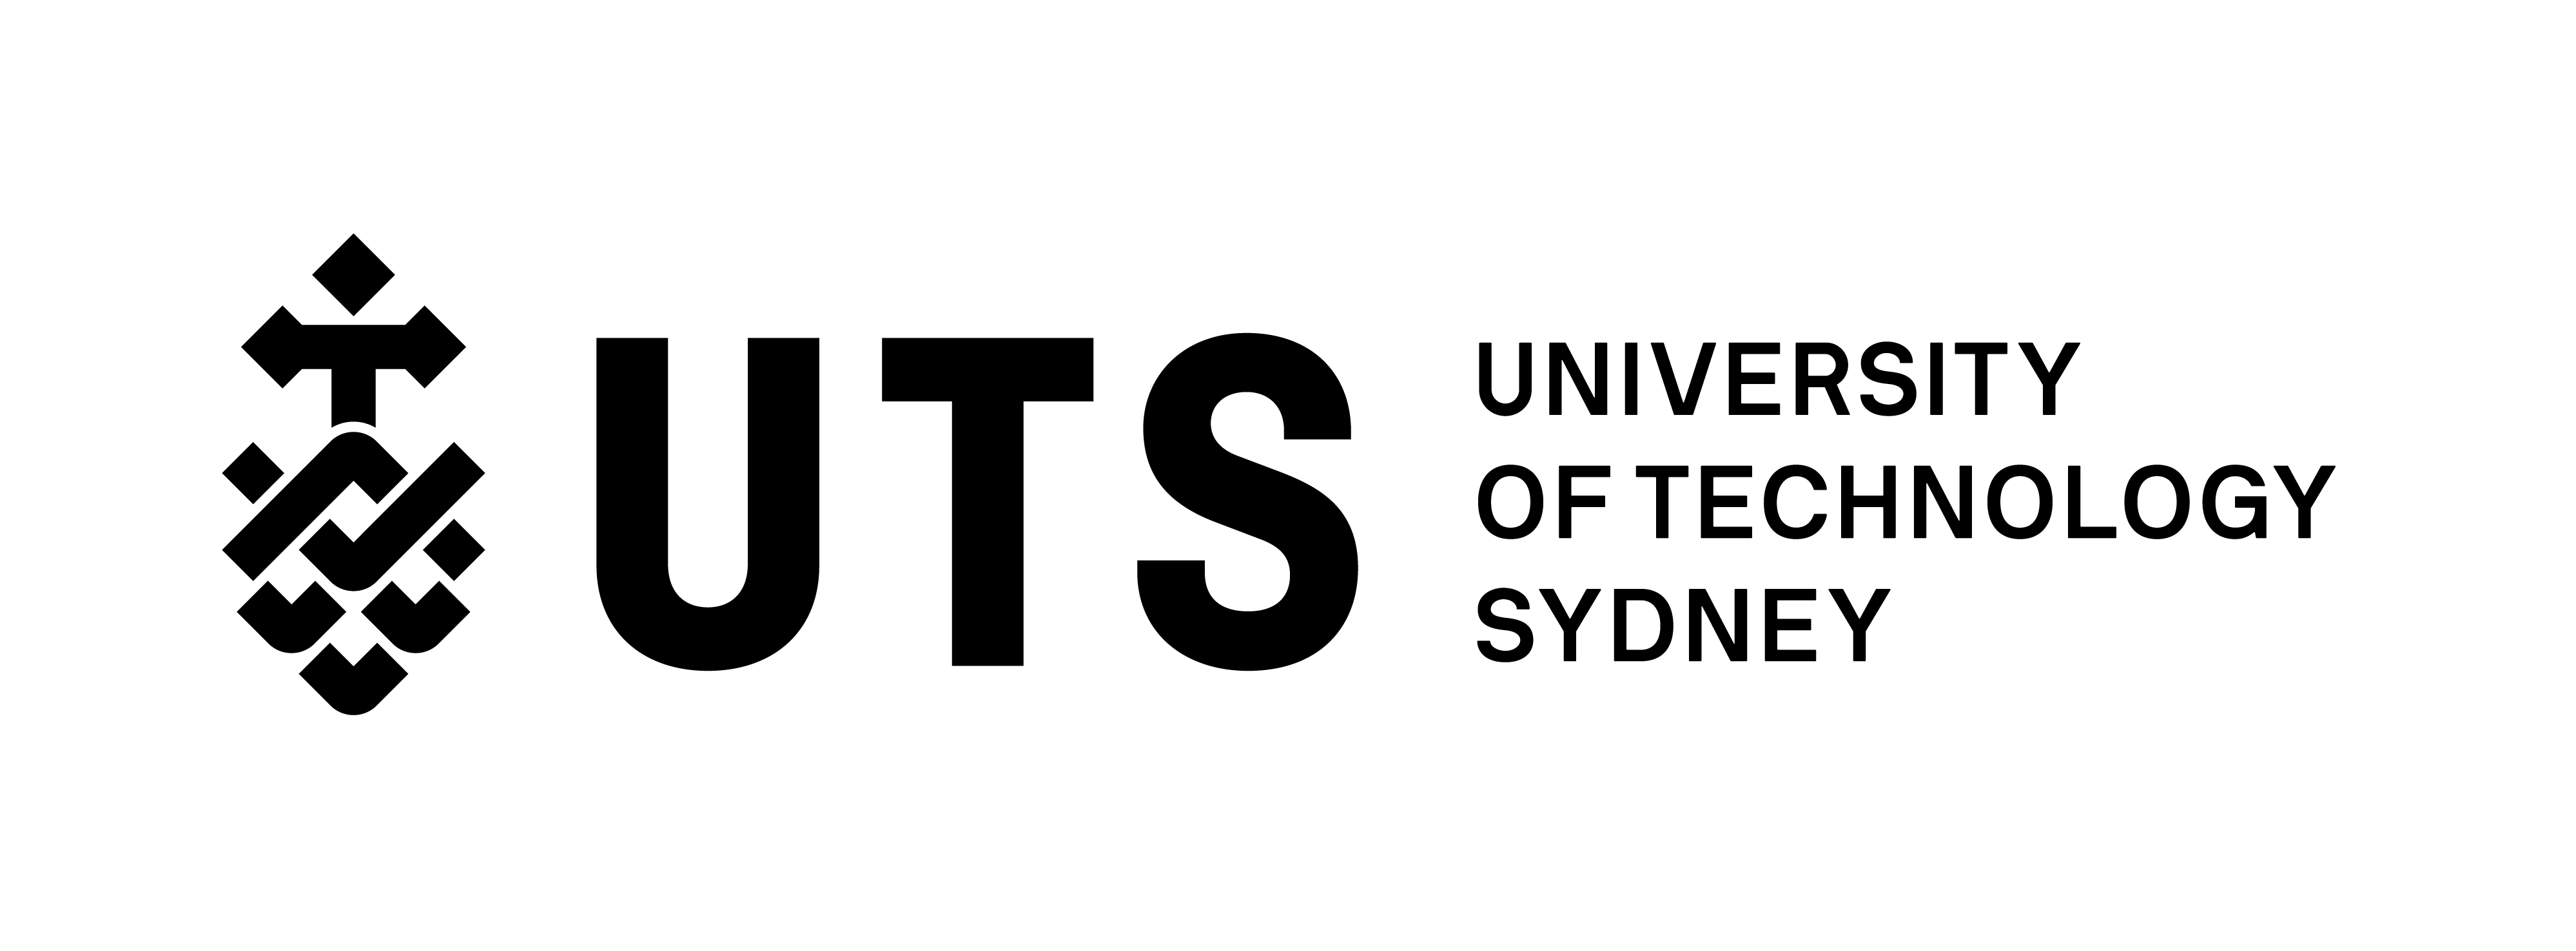 University of Technology Sydney - Bachelor of Communication - Digital and Social Media / Bachelor of Arts - International Studies